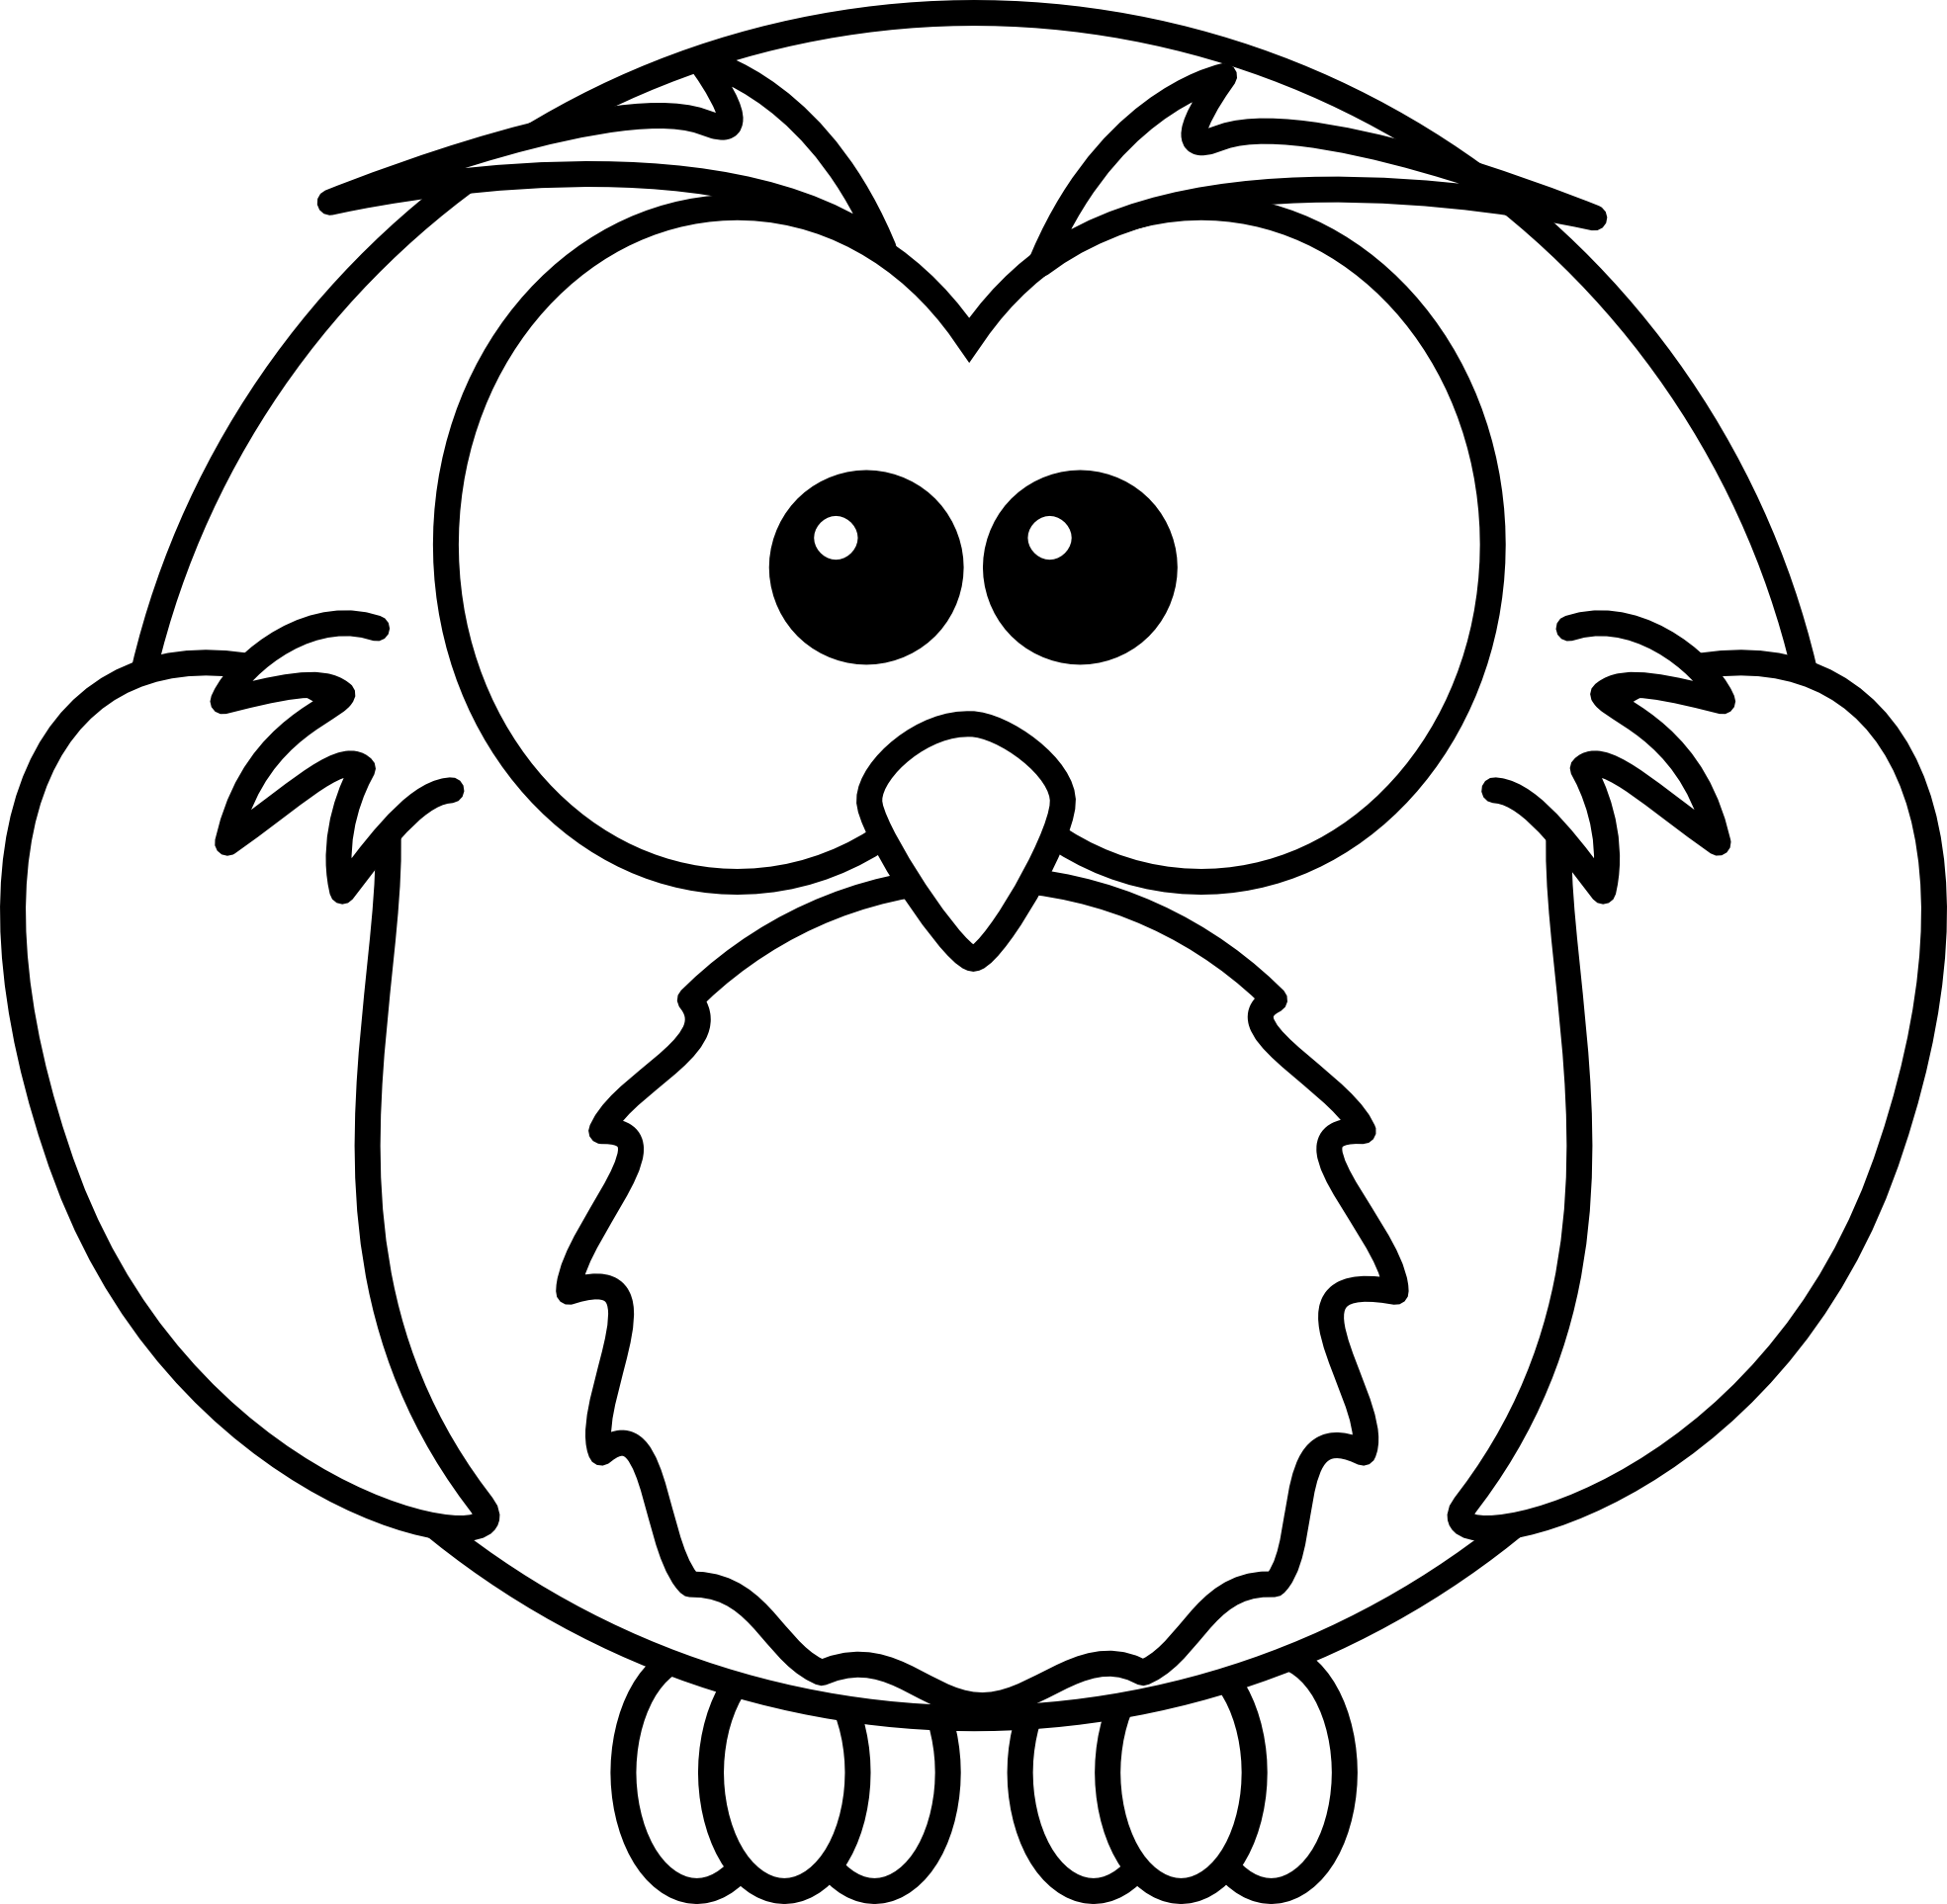 lemmling cartoon owl black white line art scalable ... - ClipArt ...